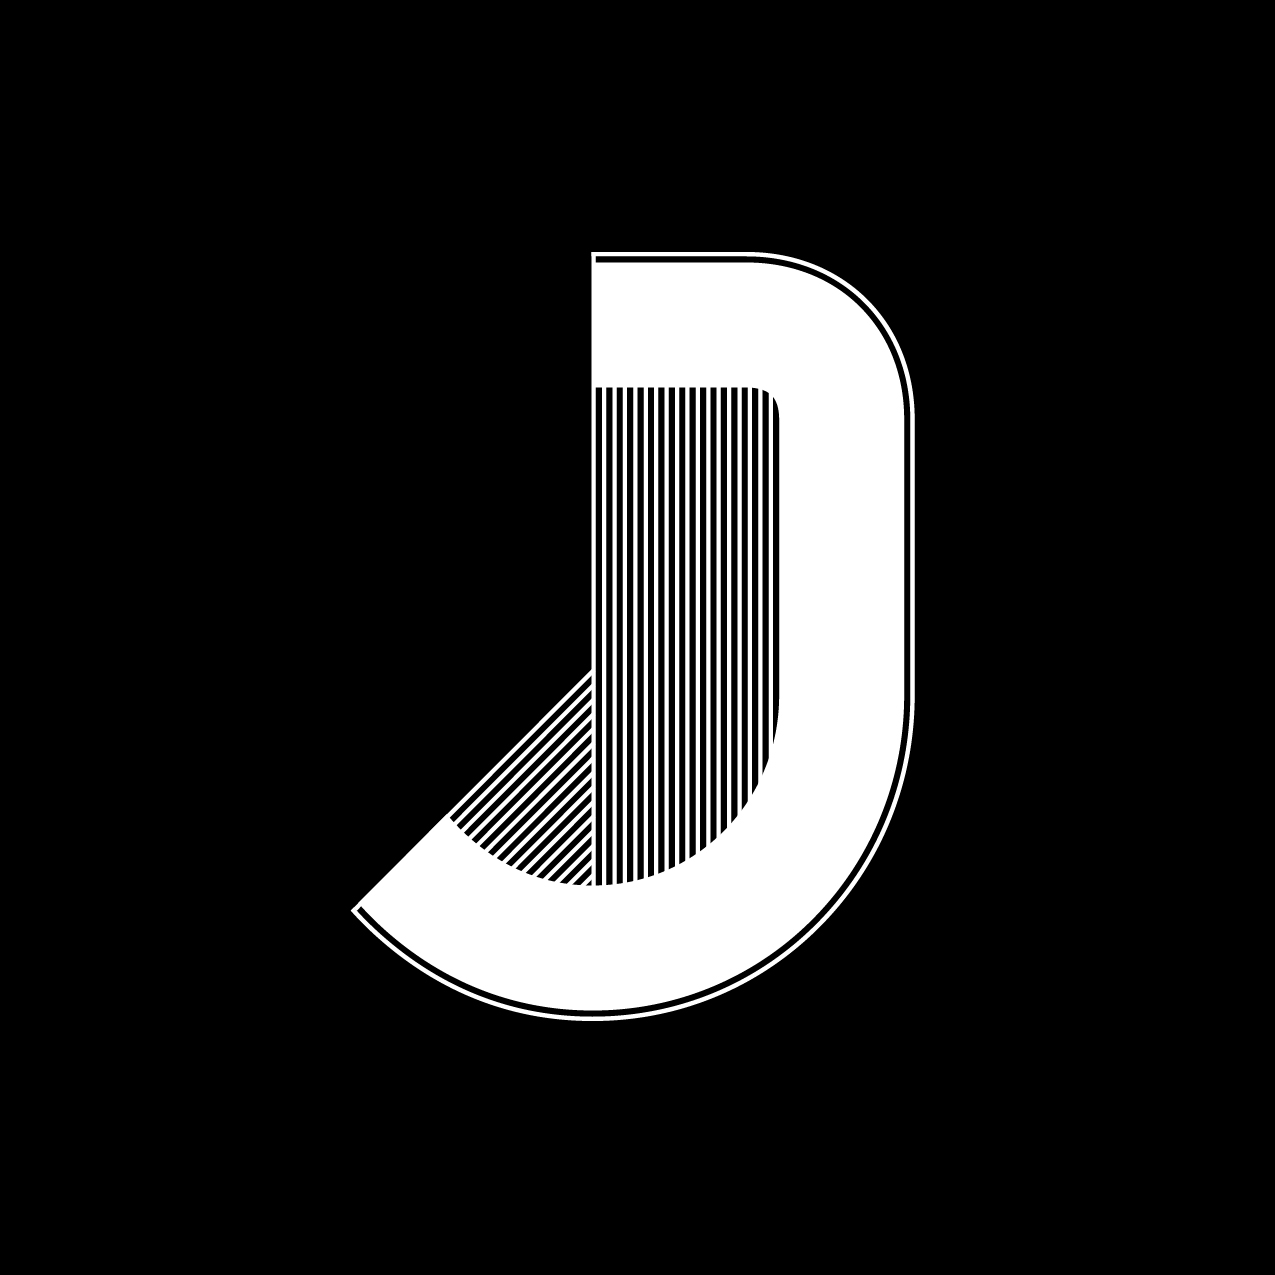 Letter J8 Design by Furia